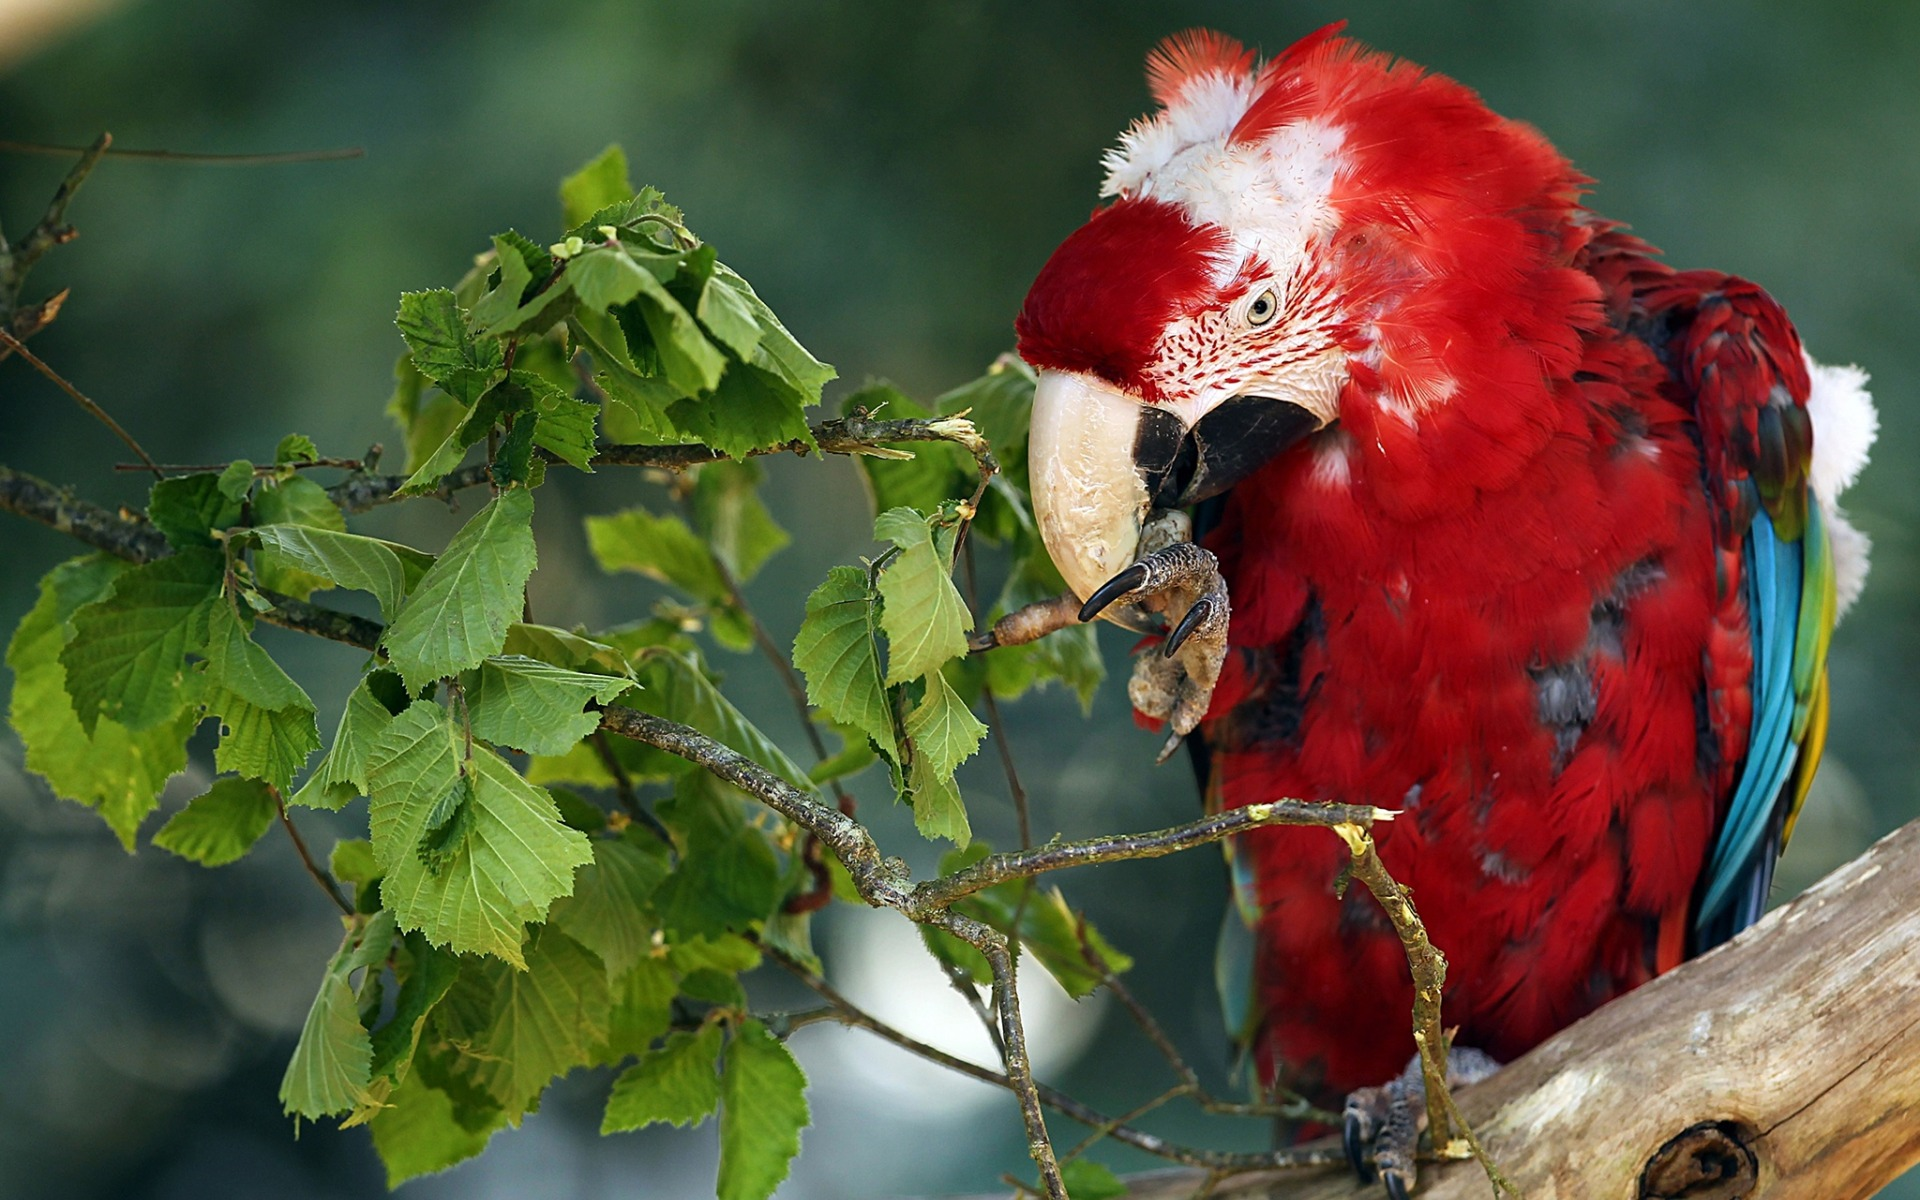 Scarlet macaw, beautiful red parrot, beautiful bird, tropical forest, South American parrot